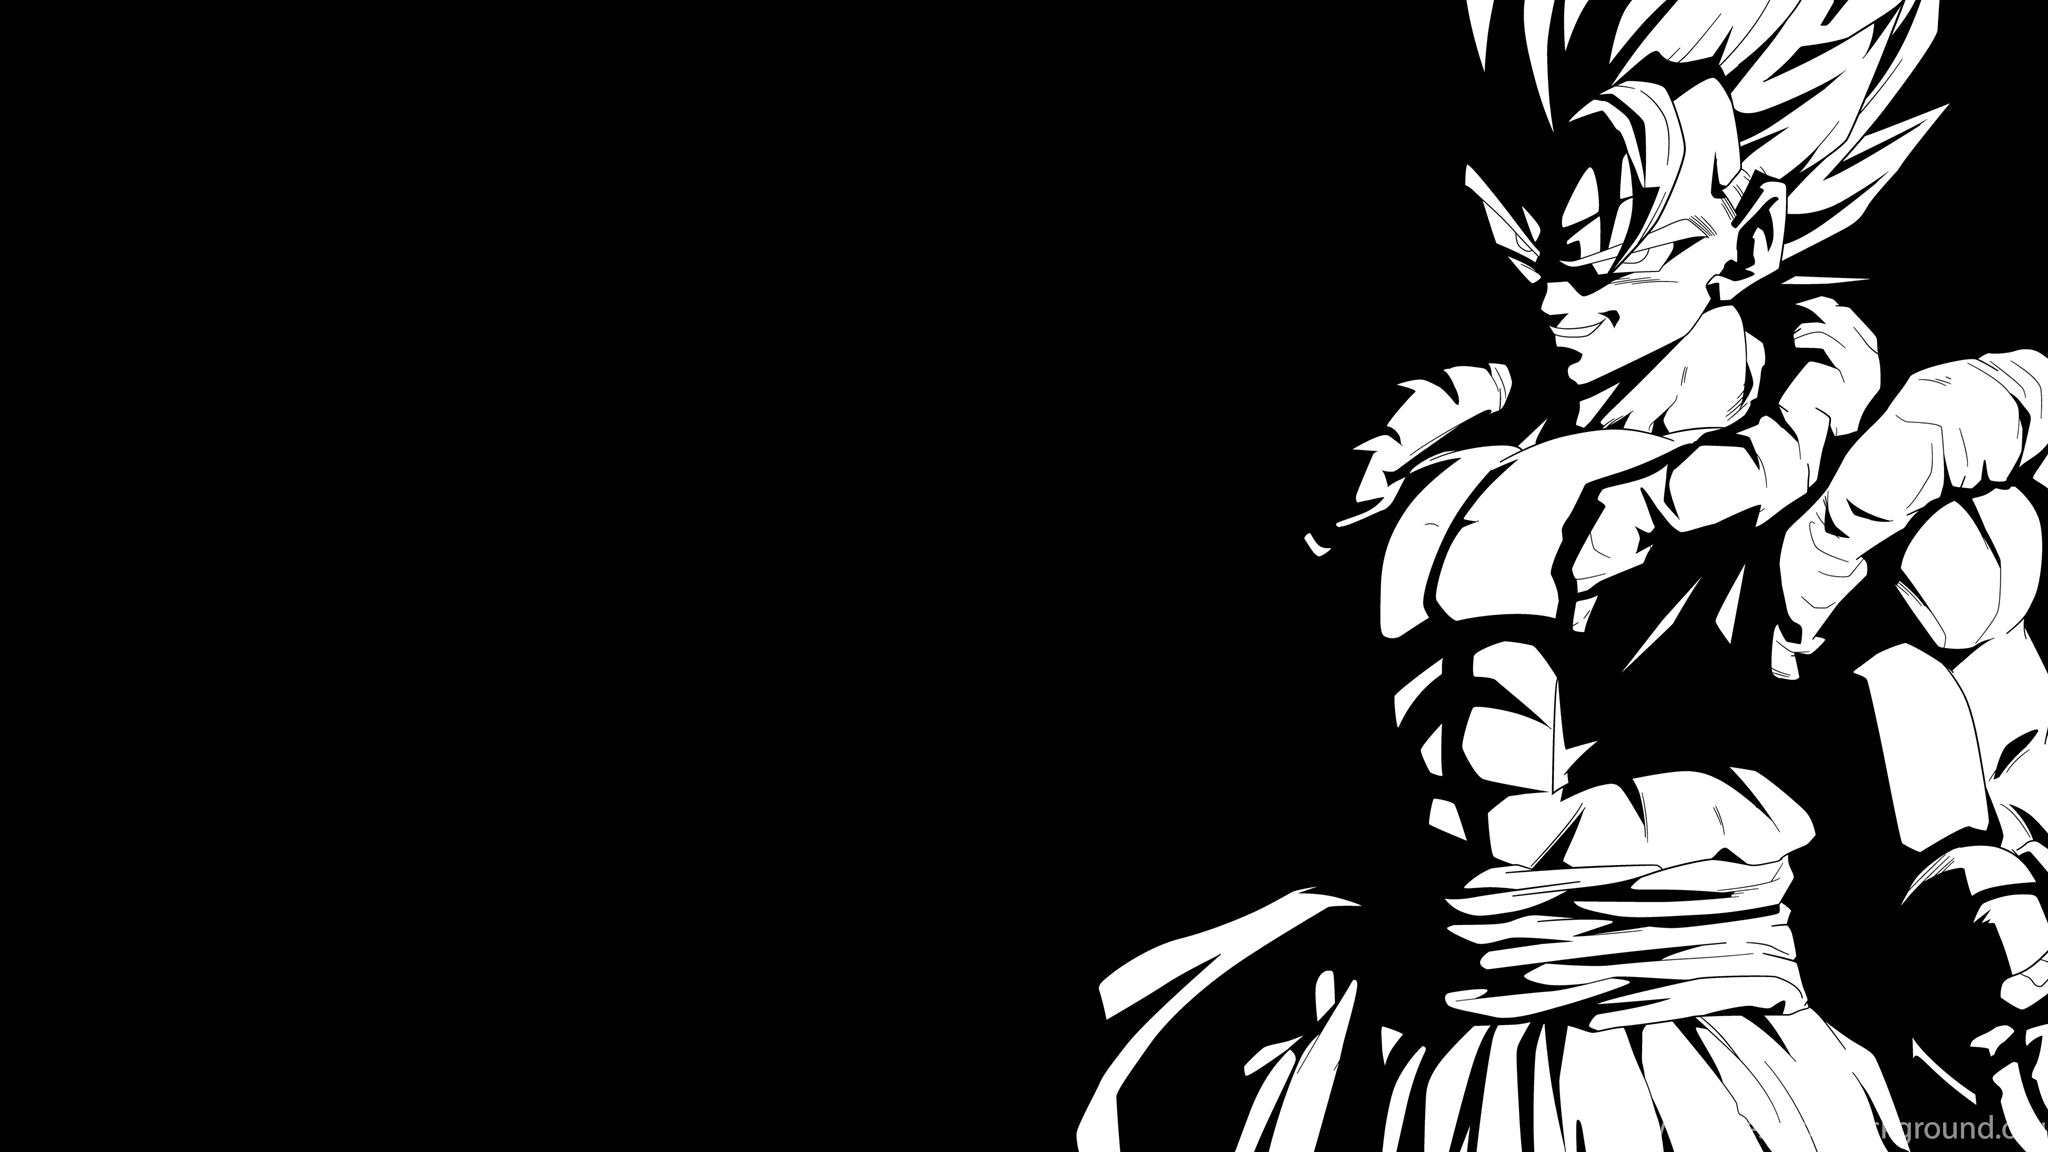 Super Gogeta Black And White 4k Wallpapers By Rayzorblade189 On